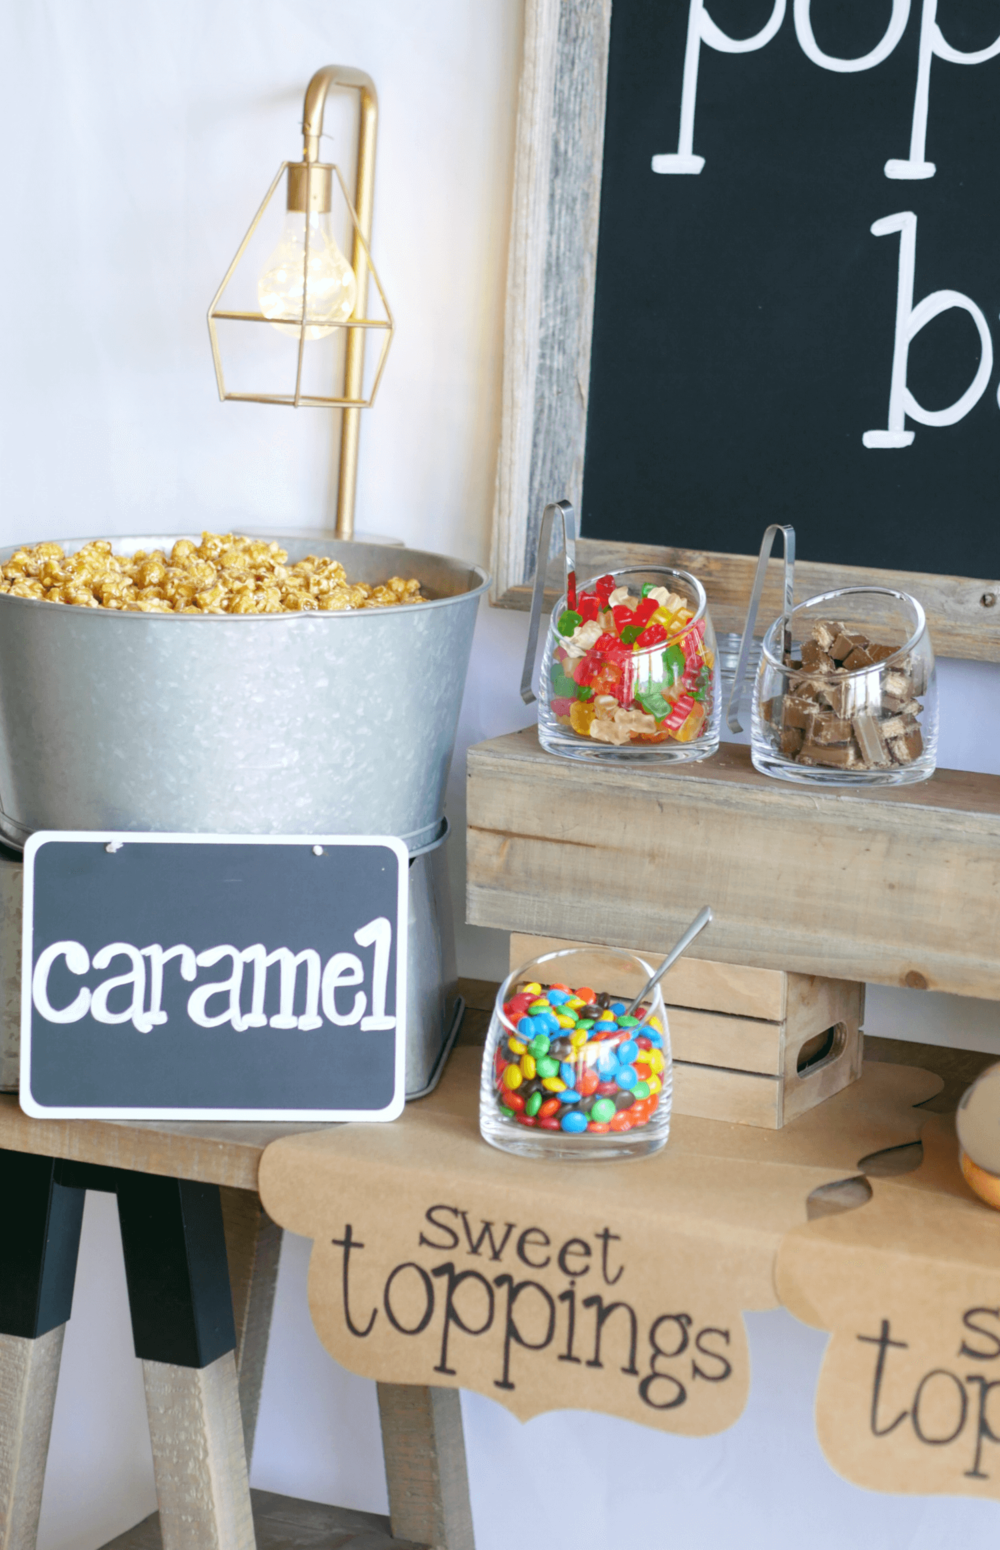 Sweet toppings ideas for popcorn / Popcorn bar / Popcorn table / wedding popcorn bar / teen popcorn bar ideas / rustic popcorn bar / Styled by Carolina from MINT Event design / www.minteventdesign.com